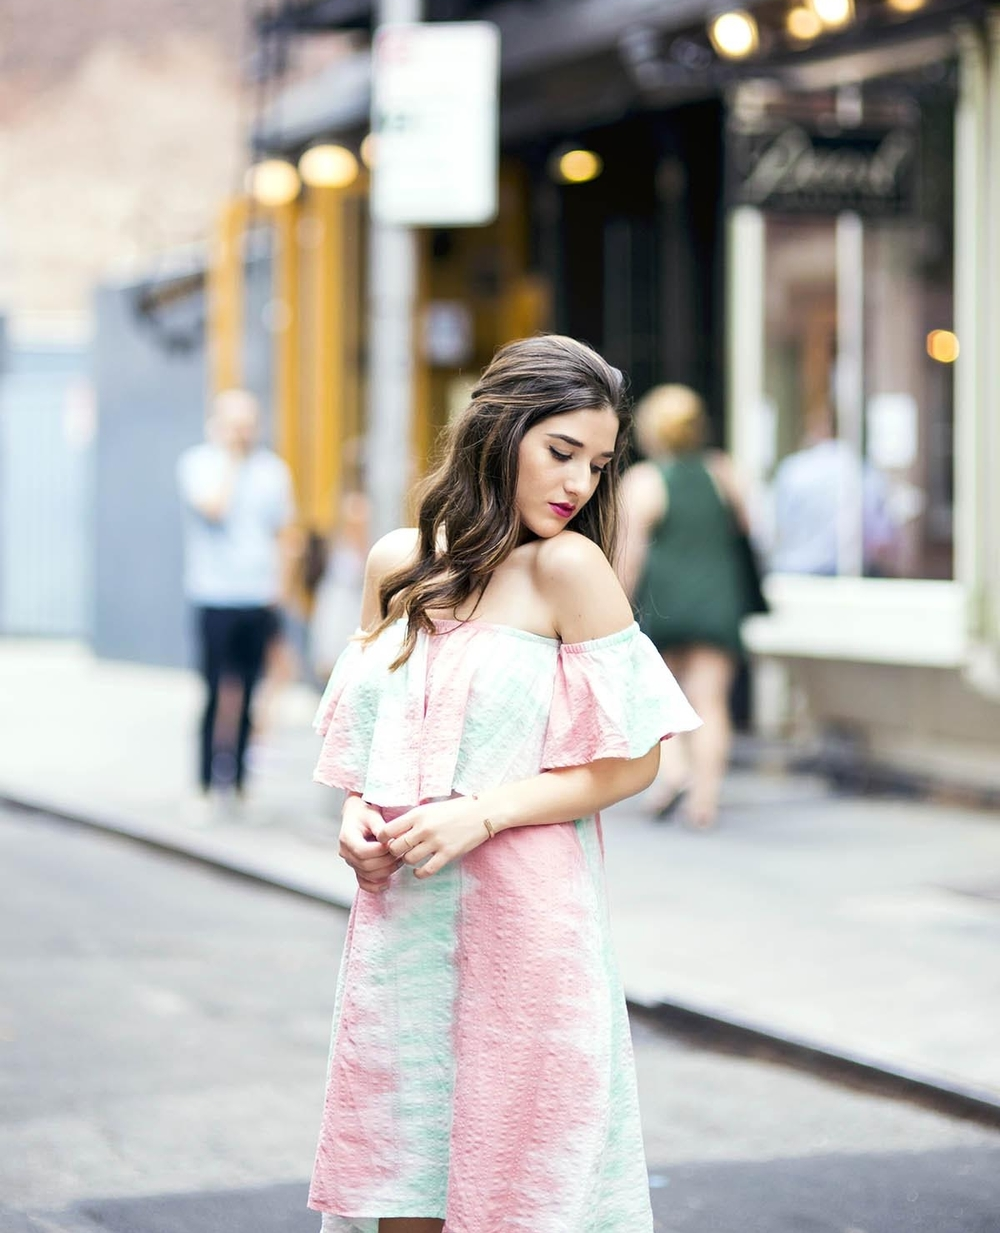 Pastel Tie-Dye Dress Shop Trescool Louboutins & Love Fashion Blog Esther Santer NYC Street Style Blogger Outfit OOTD Trendy Cold Shoulders Blue Black Women Girl Hair Curly Brown Green Pink Red Lip Makeup Heels Lace Up Gray Fashion Lady Bracelet Choker.jpg